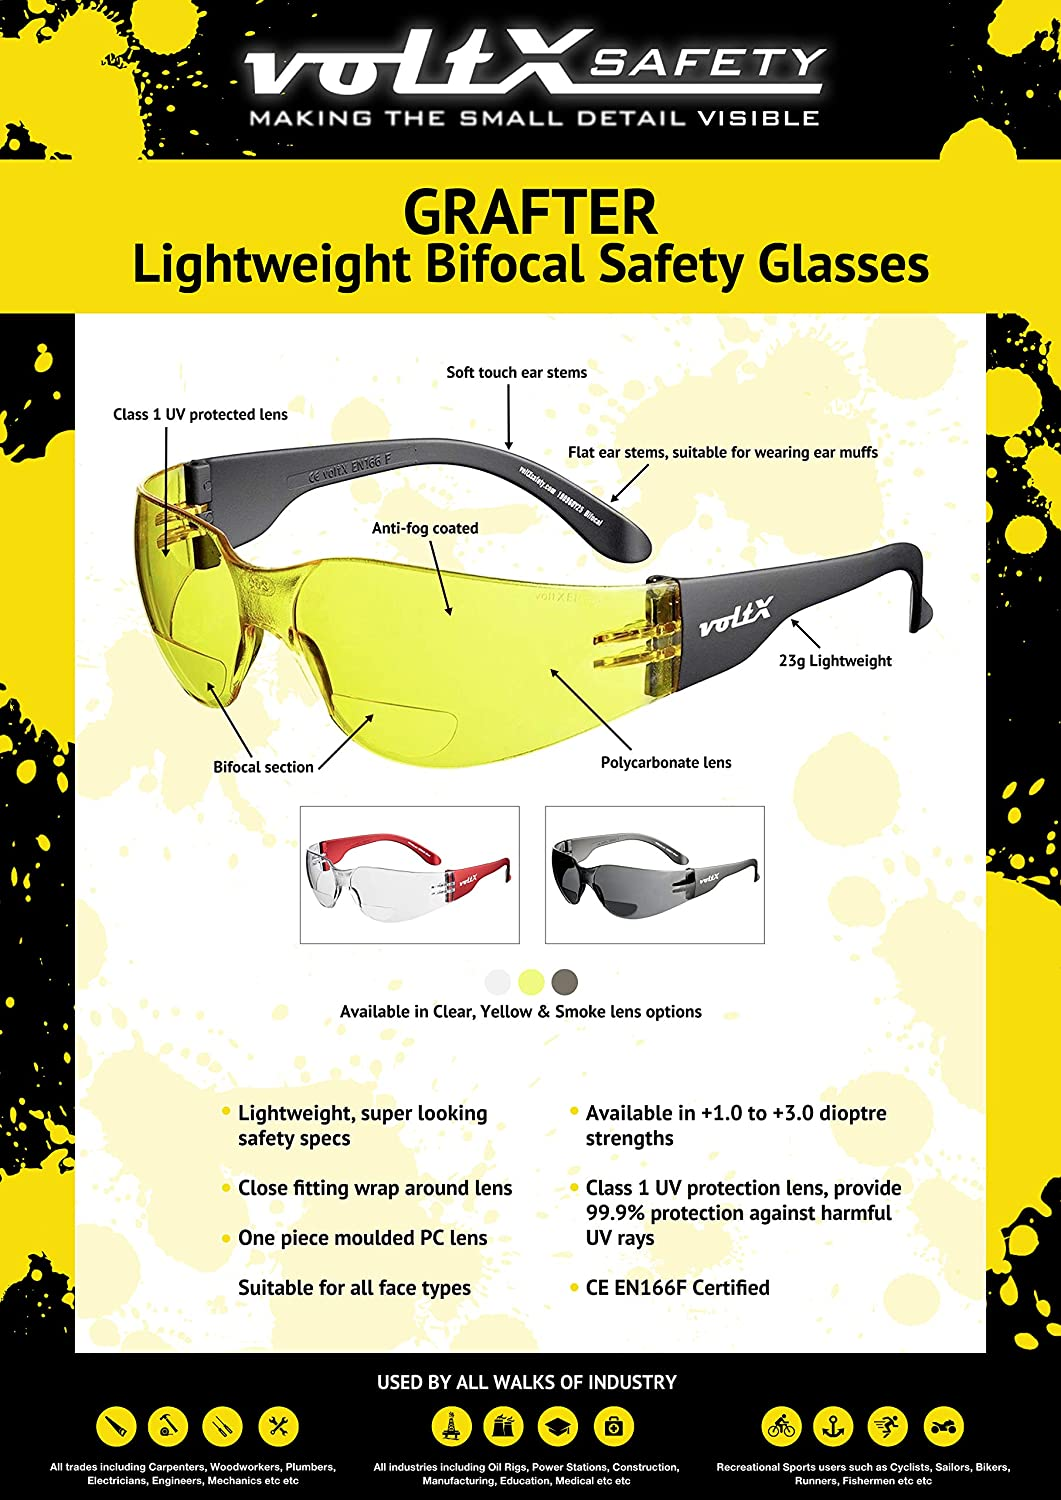 Cycling Sports Glasses CE EN166f certified CLEAR LENS +1.5 Dioptre voltX GRAFTER Bifocal Lightweight Reading Safety Glasses